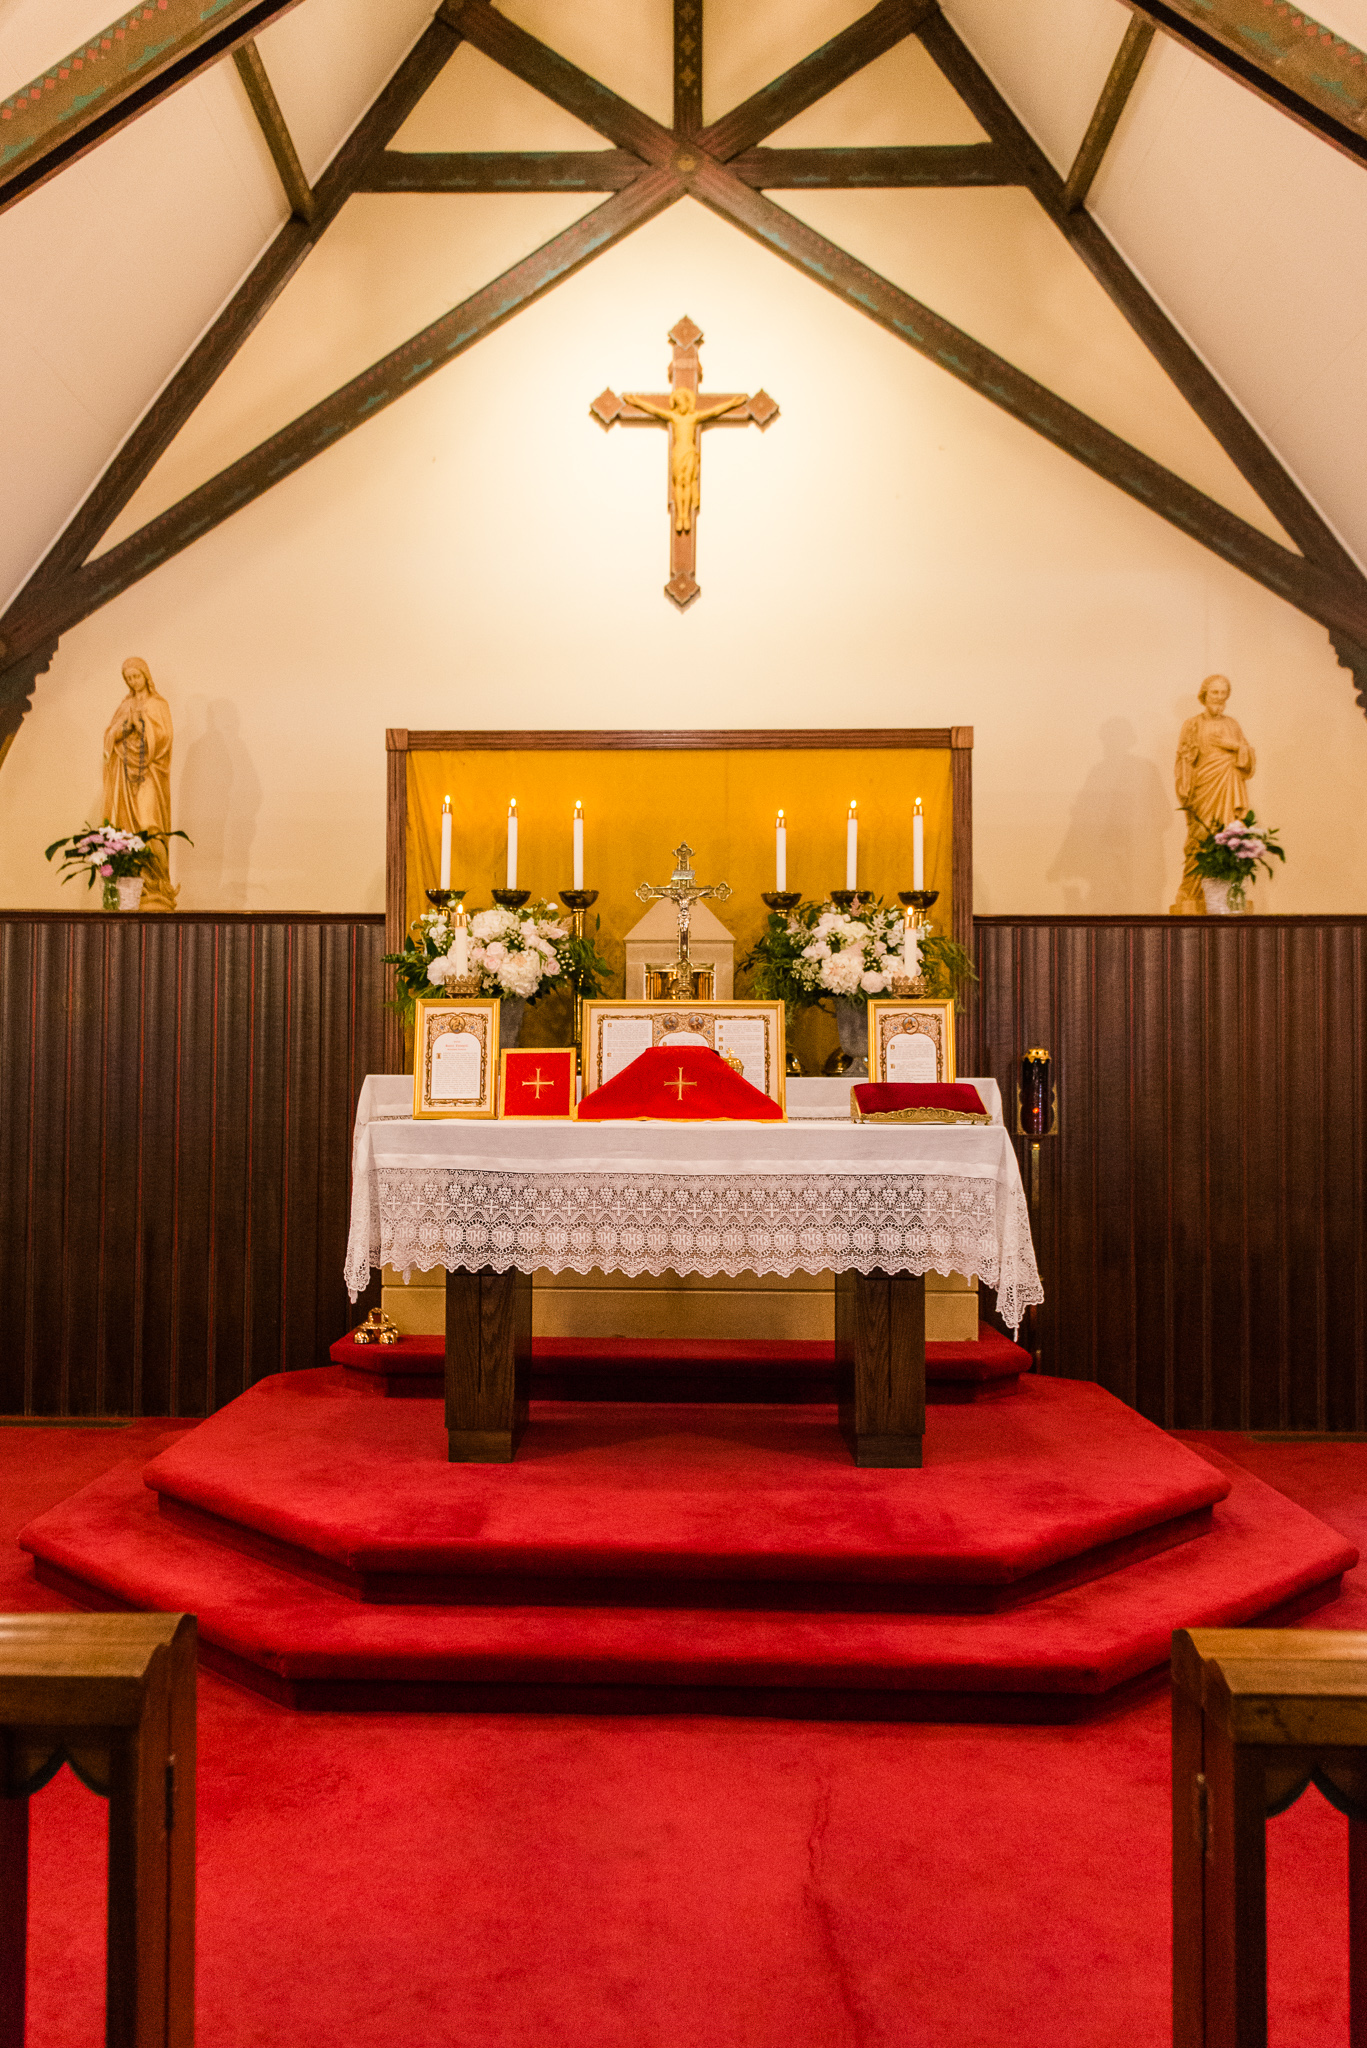 The altar set for a Traditional Latin Mass Catholic wedding in the Chapel of Immaculate Conception in Leesburg, Northern Virginia